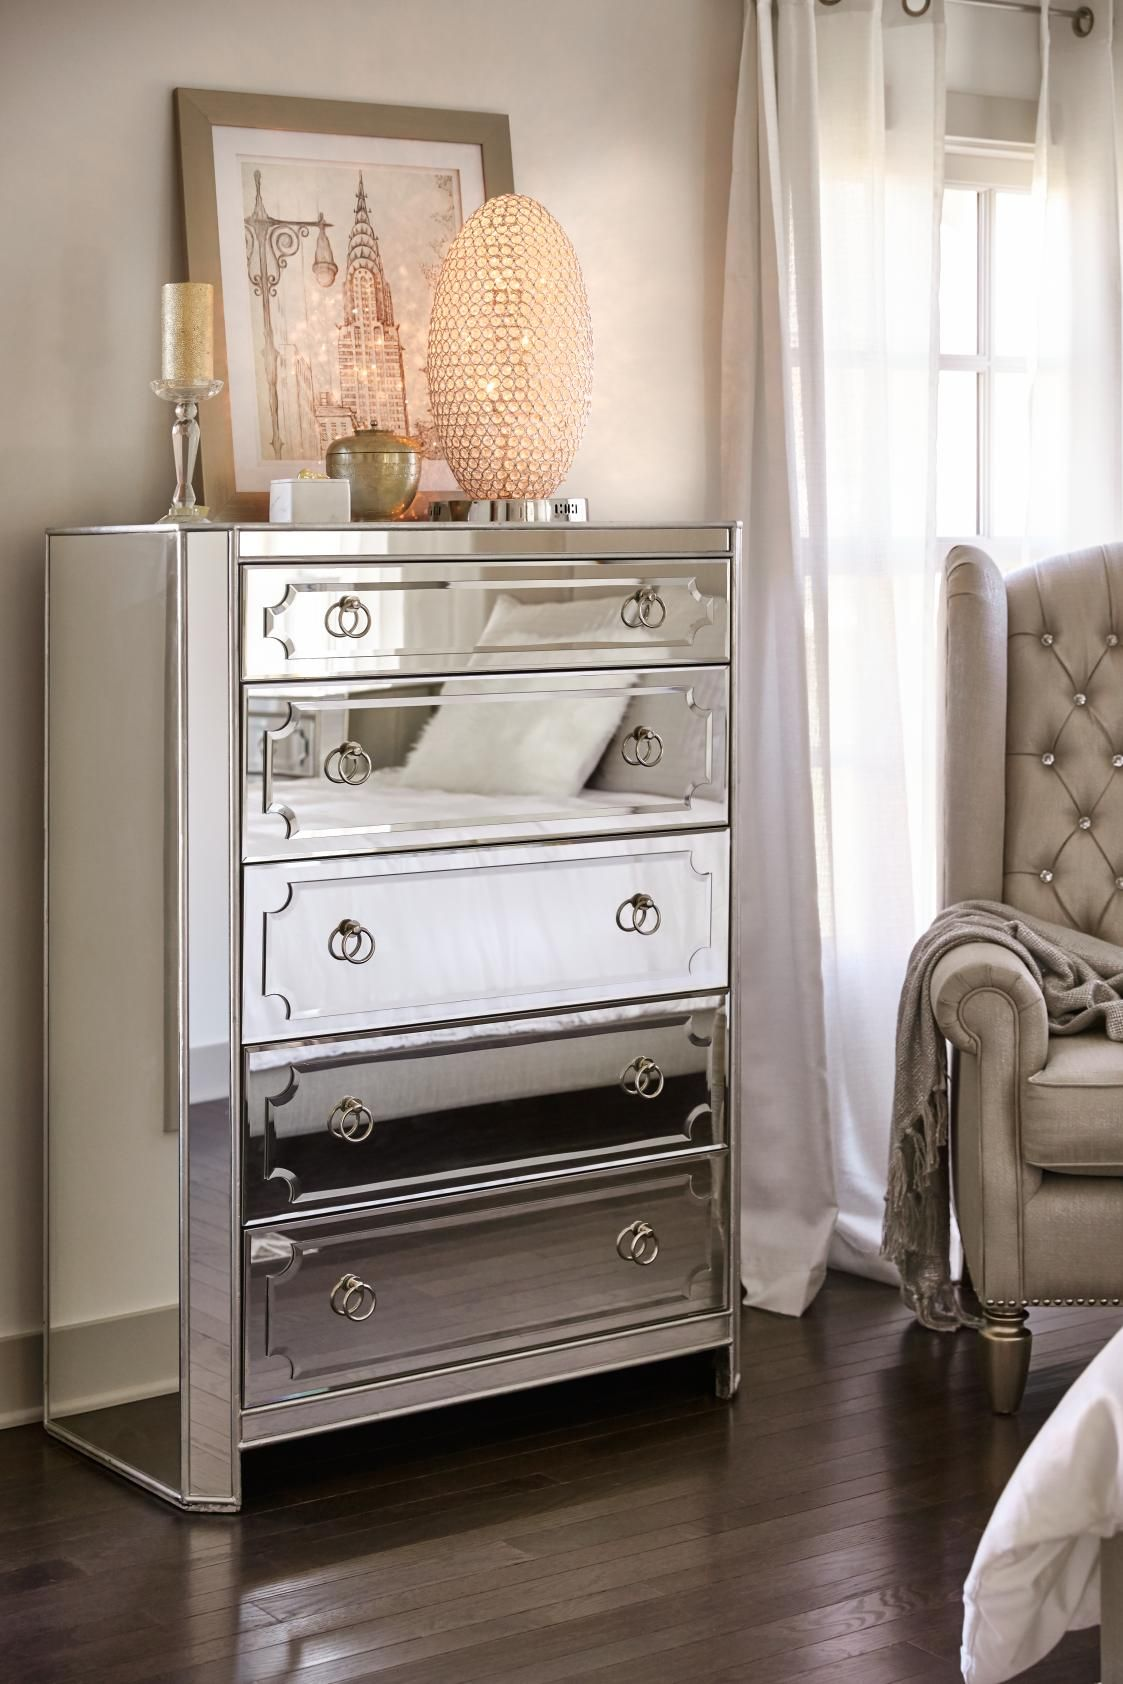 Harlow Chest In 2020 Mirrored Dresser Bedroom Mirrored Bedroom